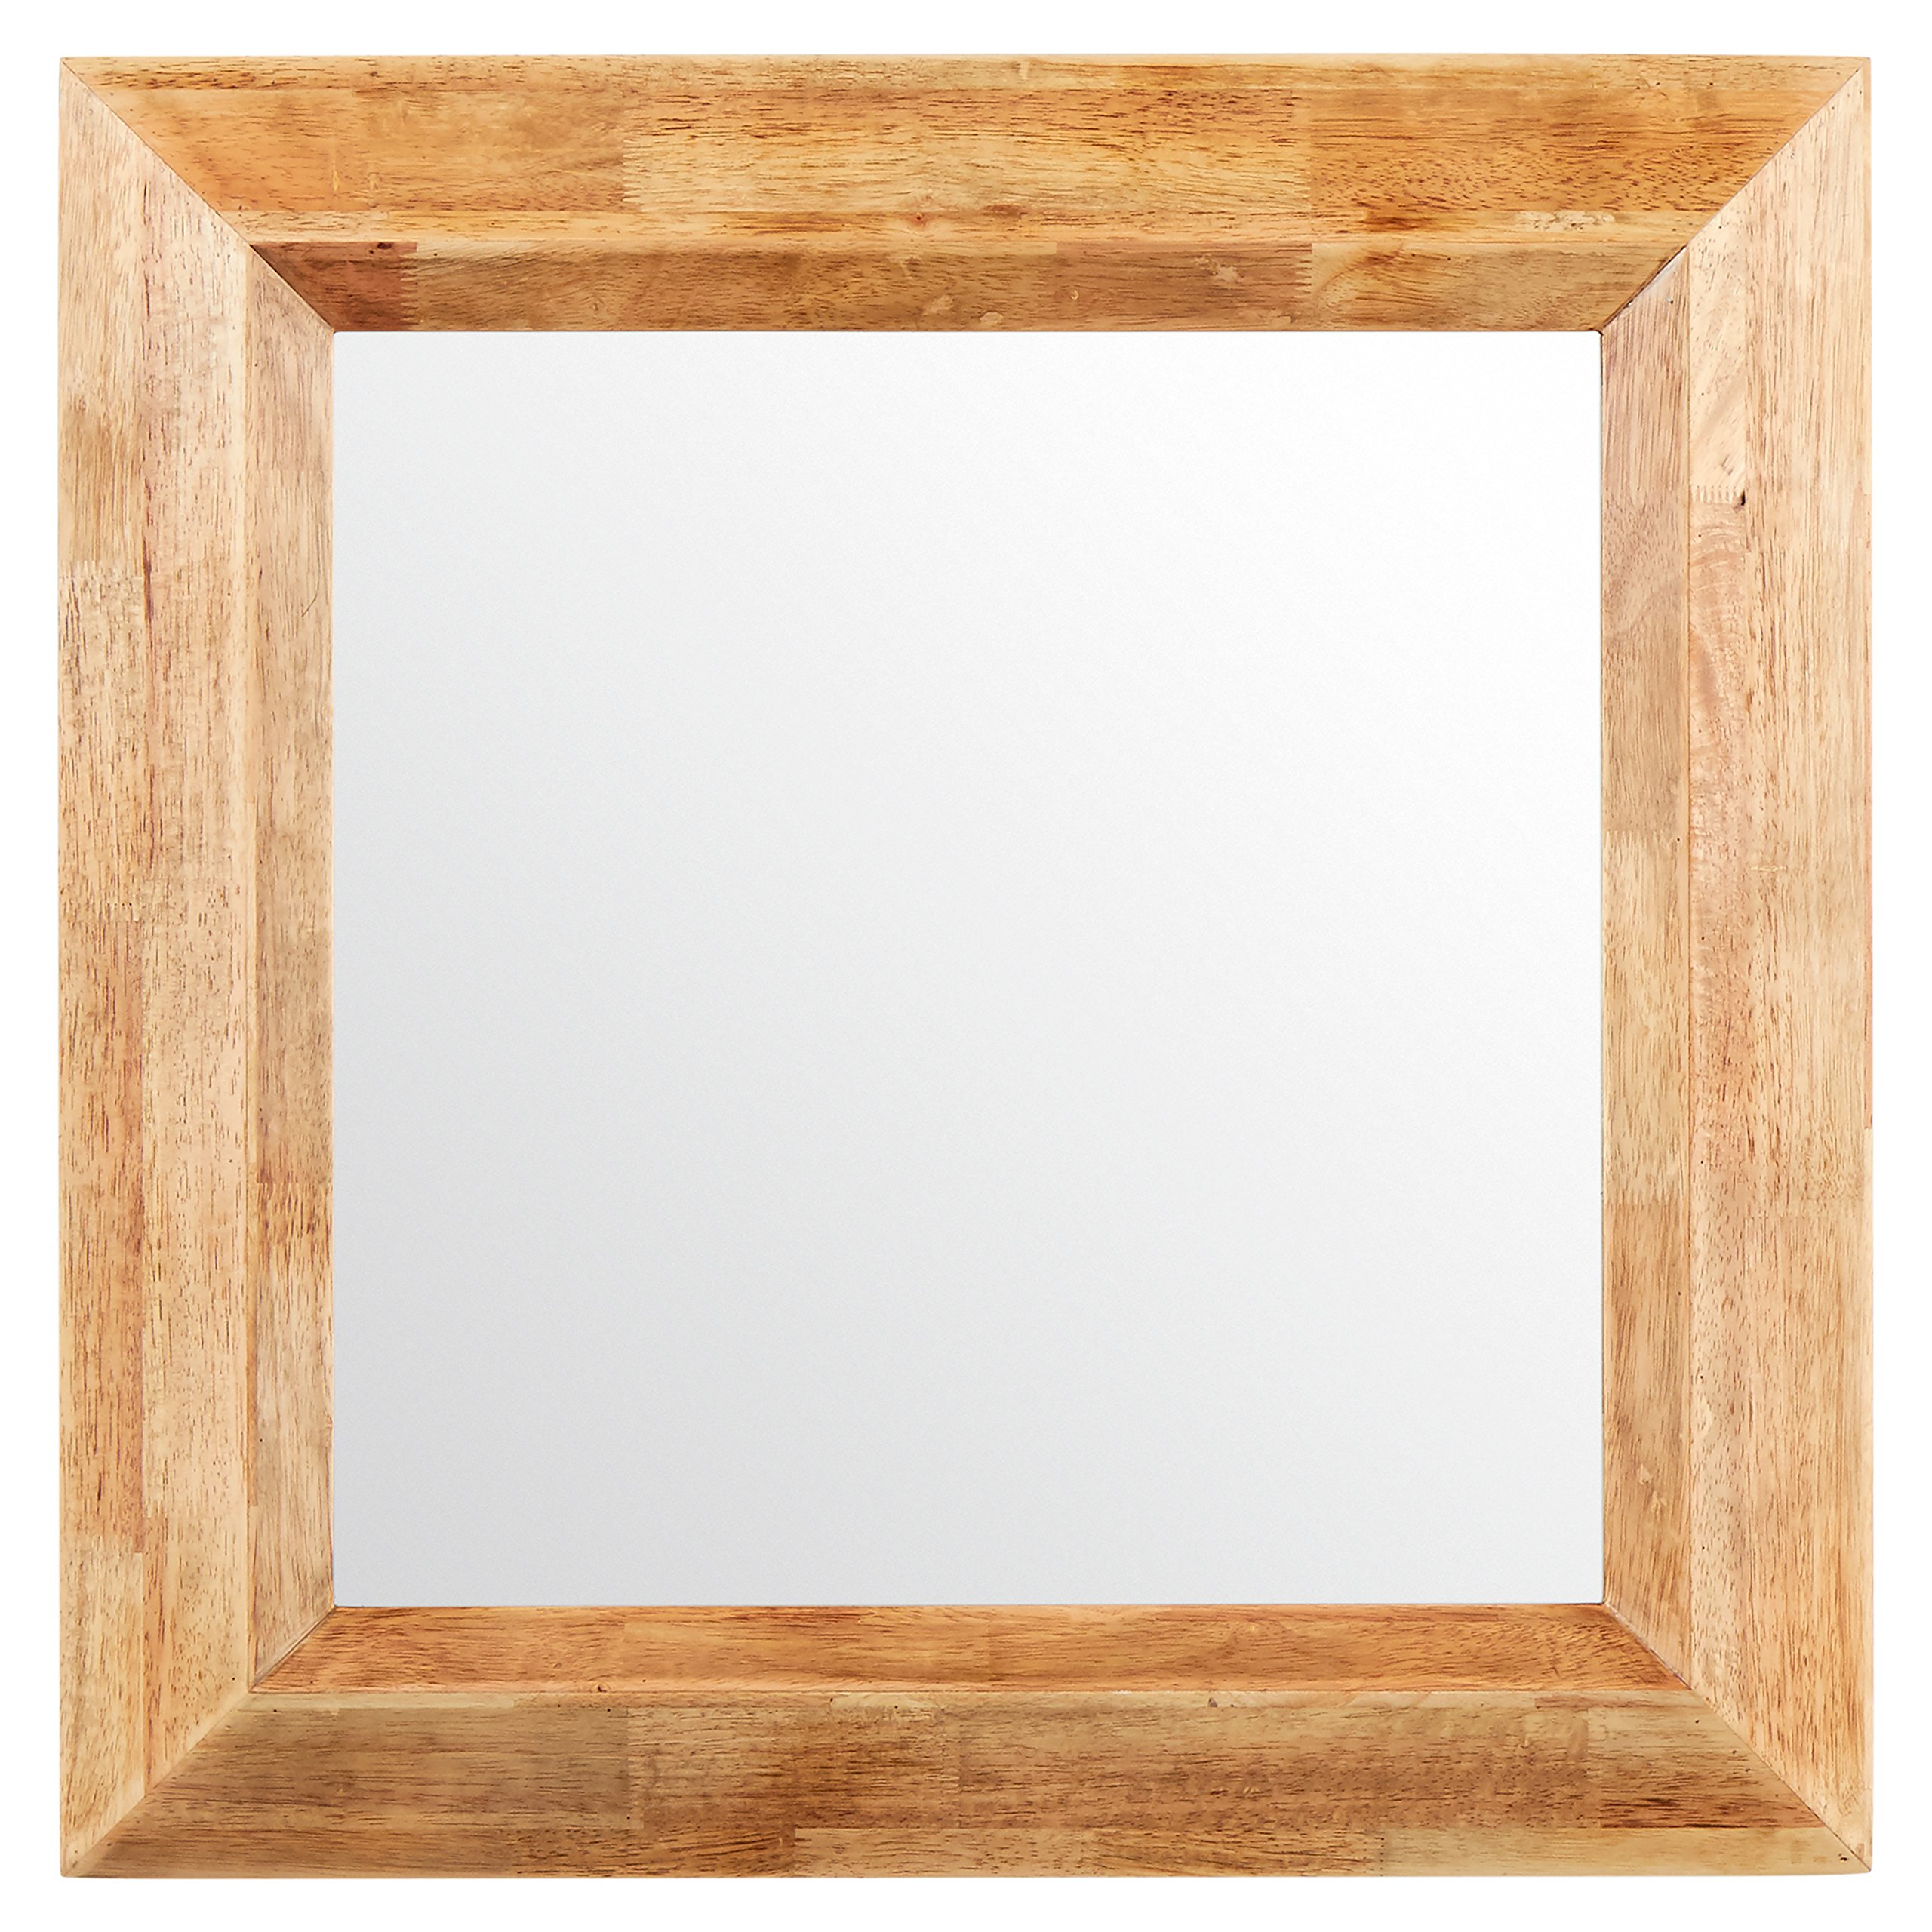 Stone & Beam Square Rustic Wood Frame Mirror, 25.75'' H, Natural by Stone & Beam (Image #7)